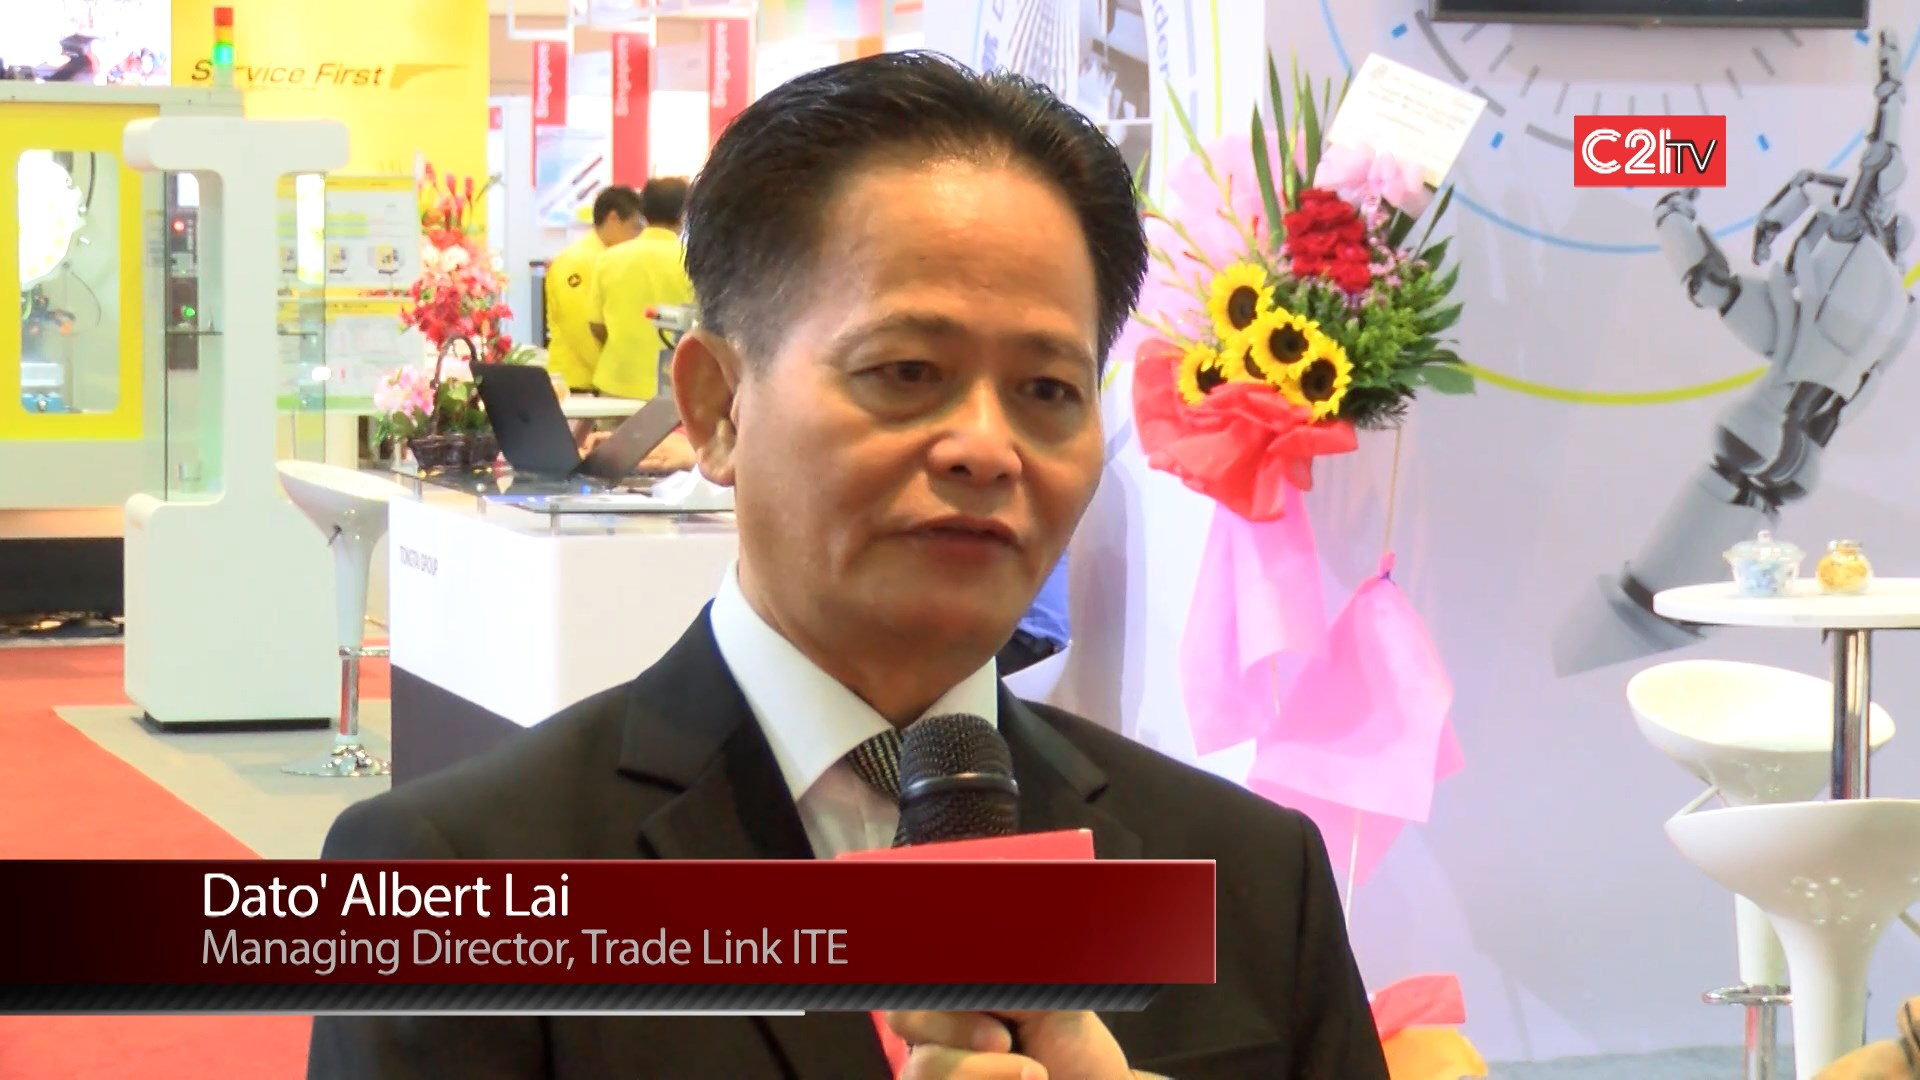 Dato' Albert Lai - Managing Director (Trade Link ITE) METALTECH 2015